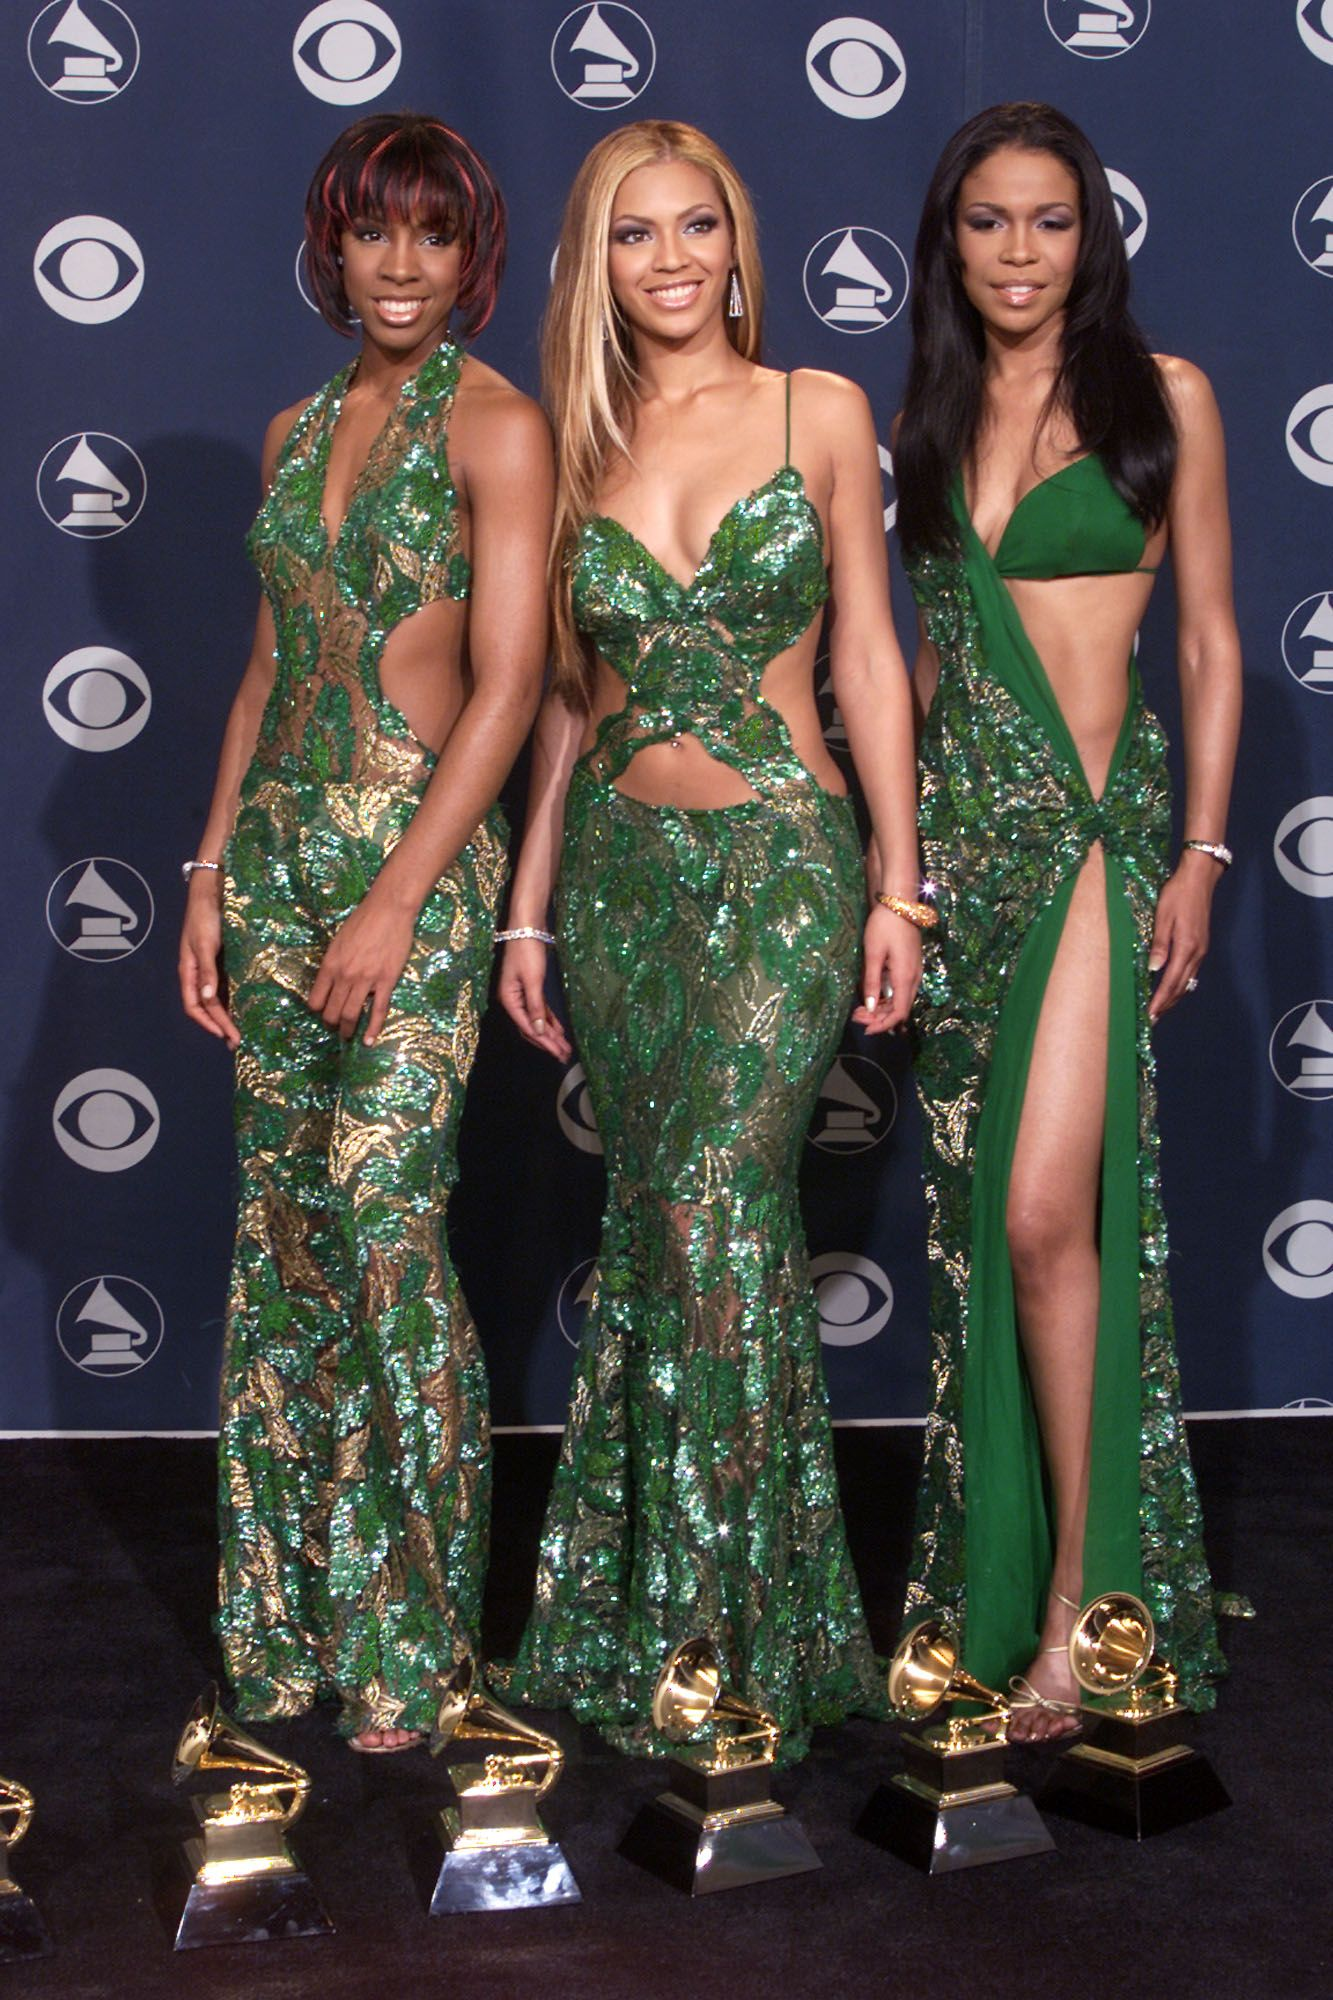 <p>When your whole squad dresses up like Eve in the Garden of Eden.</p>&#8220;/></figure>    <p>The girl group Destiny&#8217;s Child wore an Eve in the Garden inspired look.</p>    <p></p>    <h2>9. Nicki Minaj</h2>    <figure class=